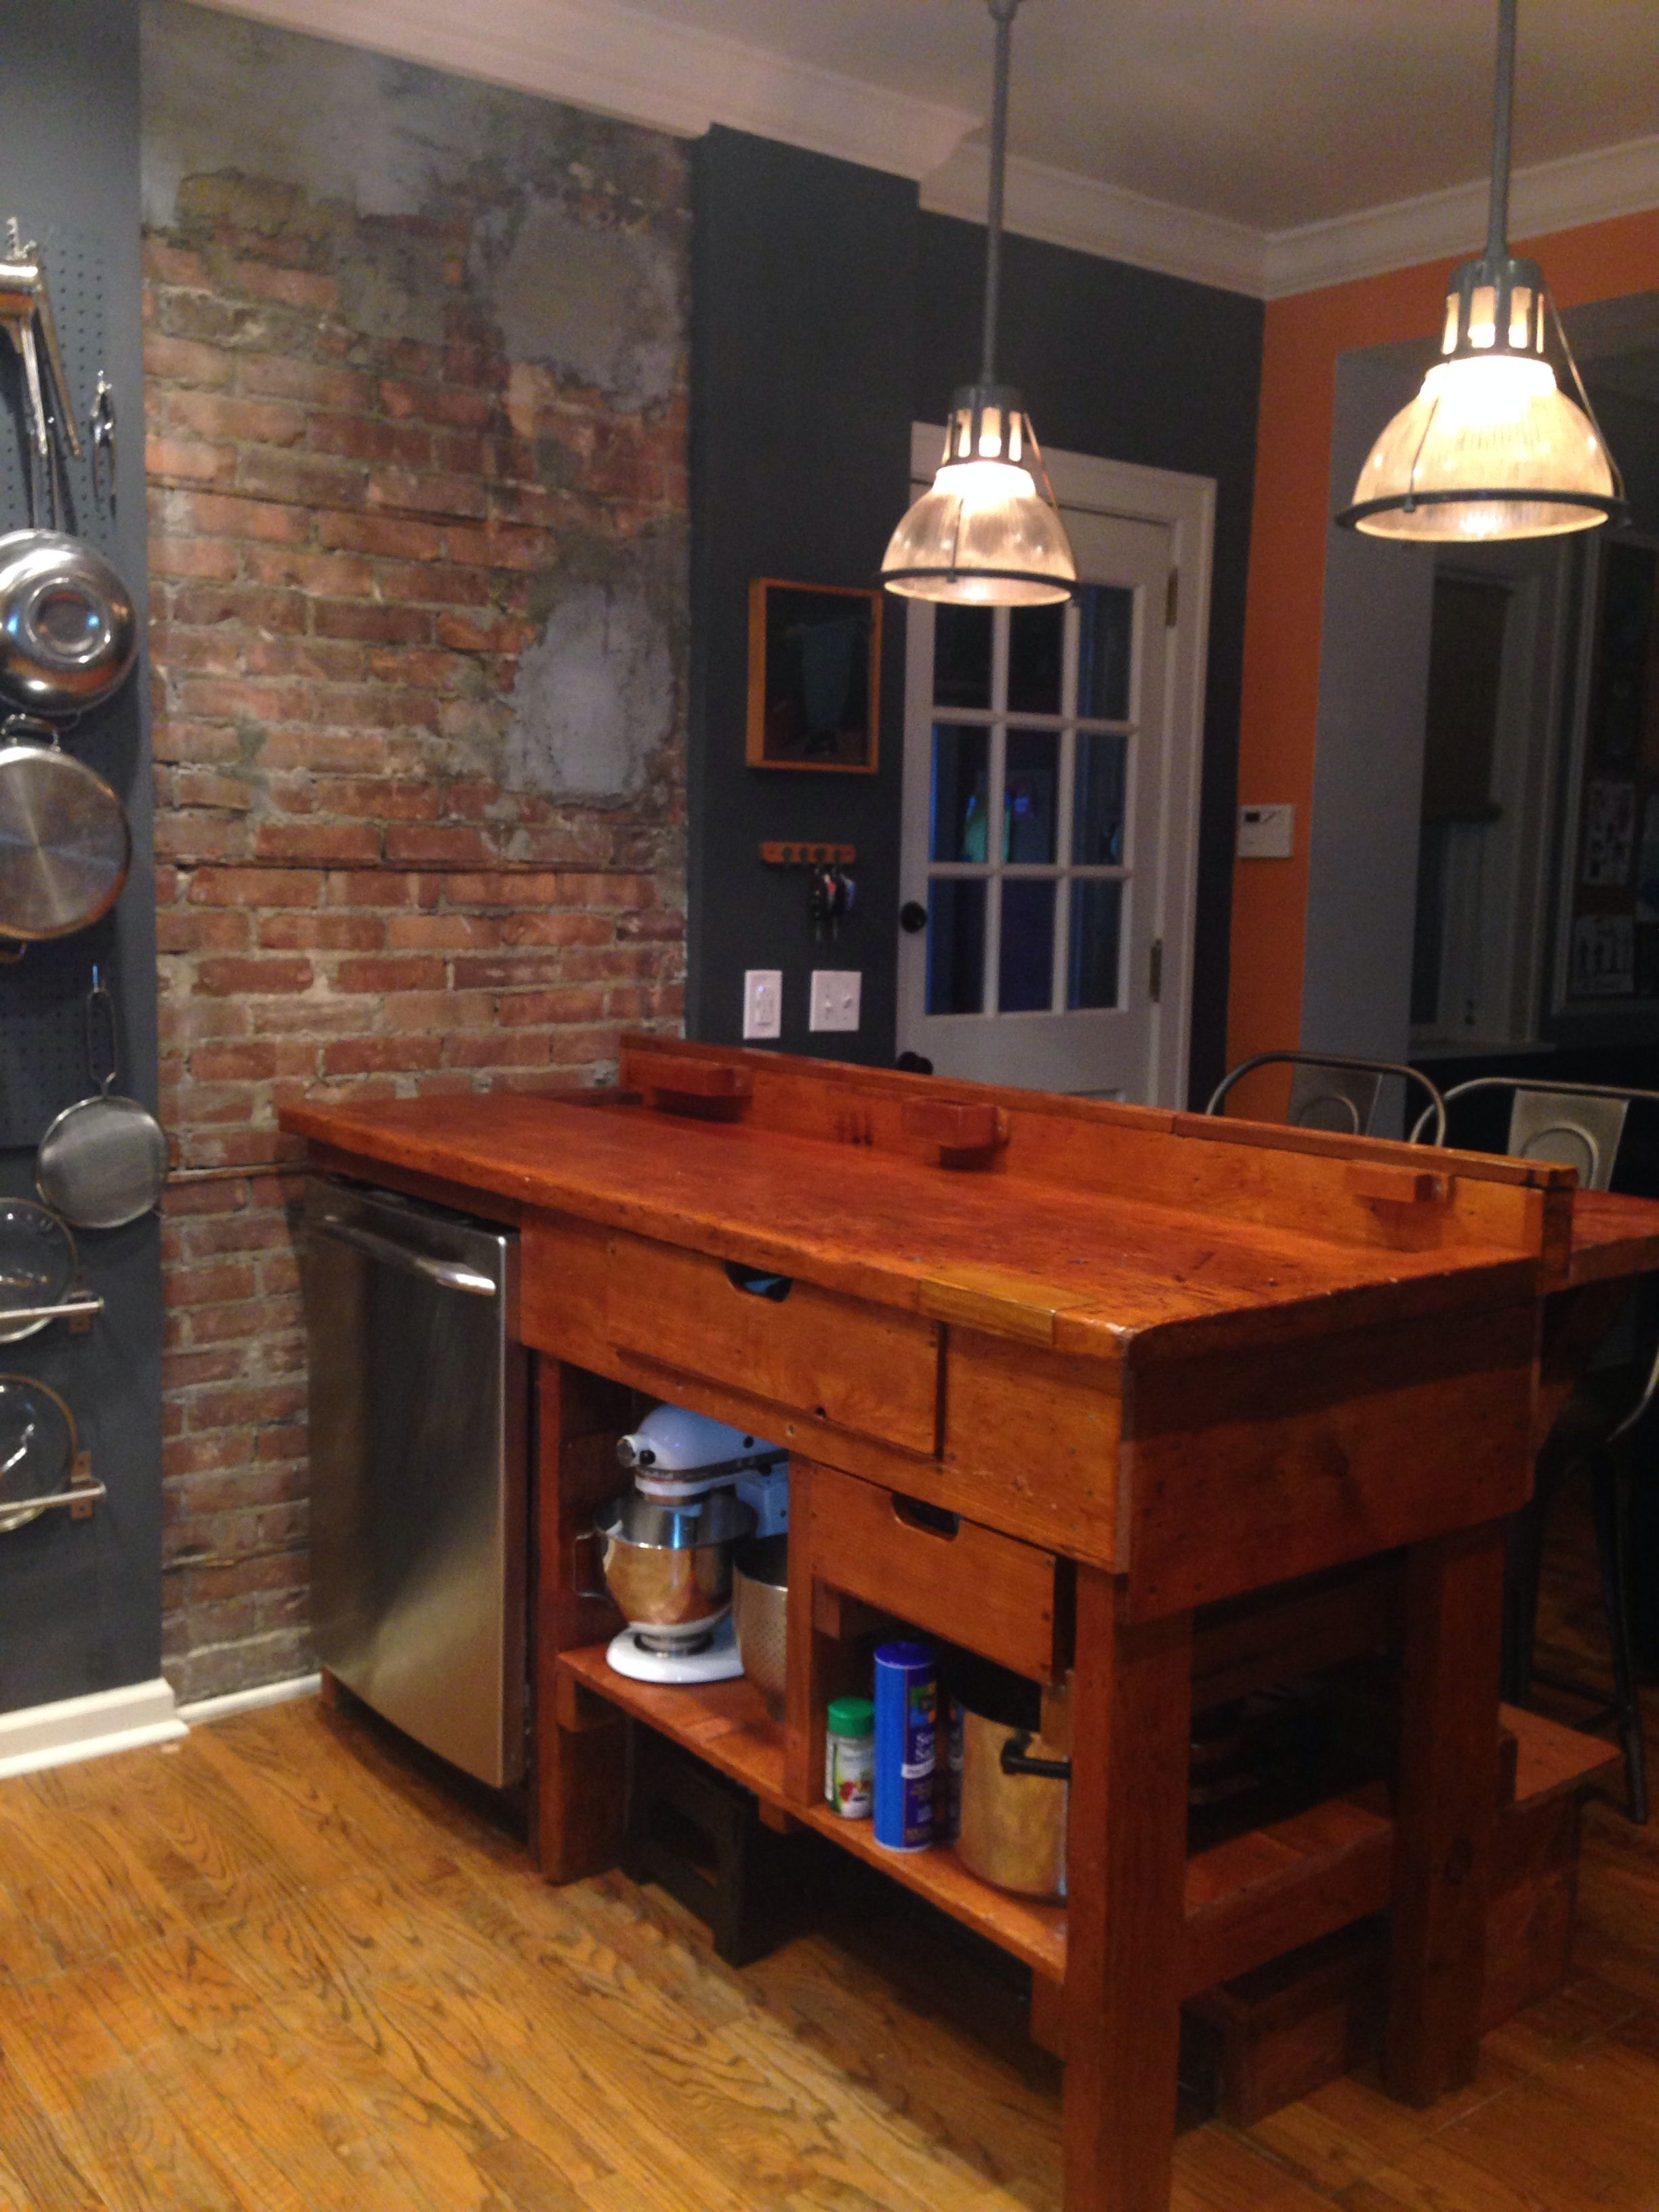 Antique Workbench As Kitchen Island With Exposed Brick